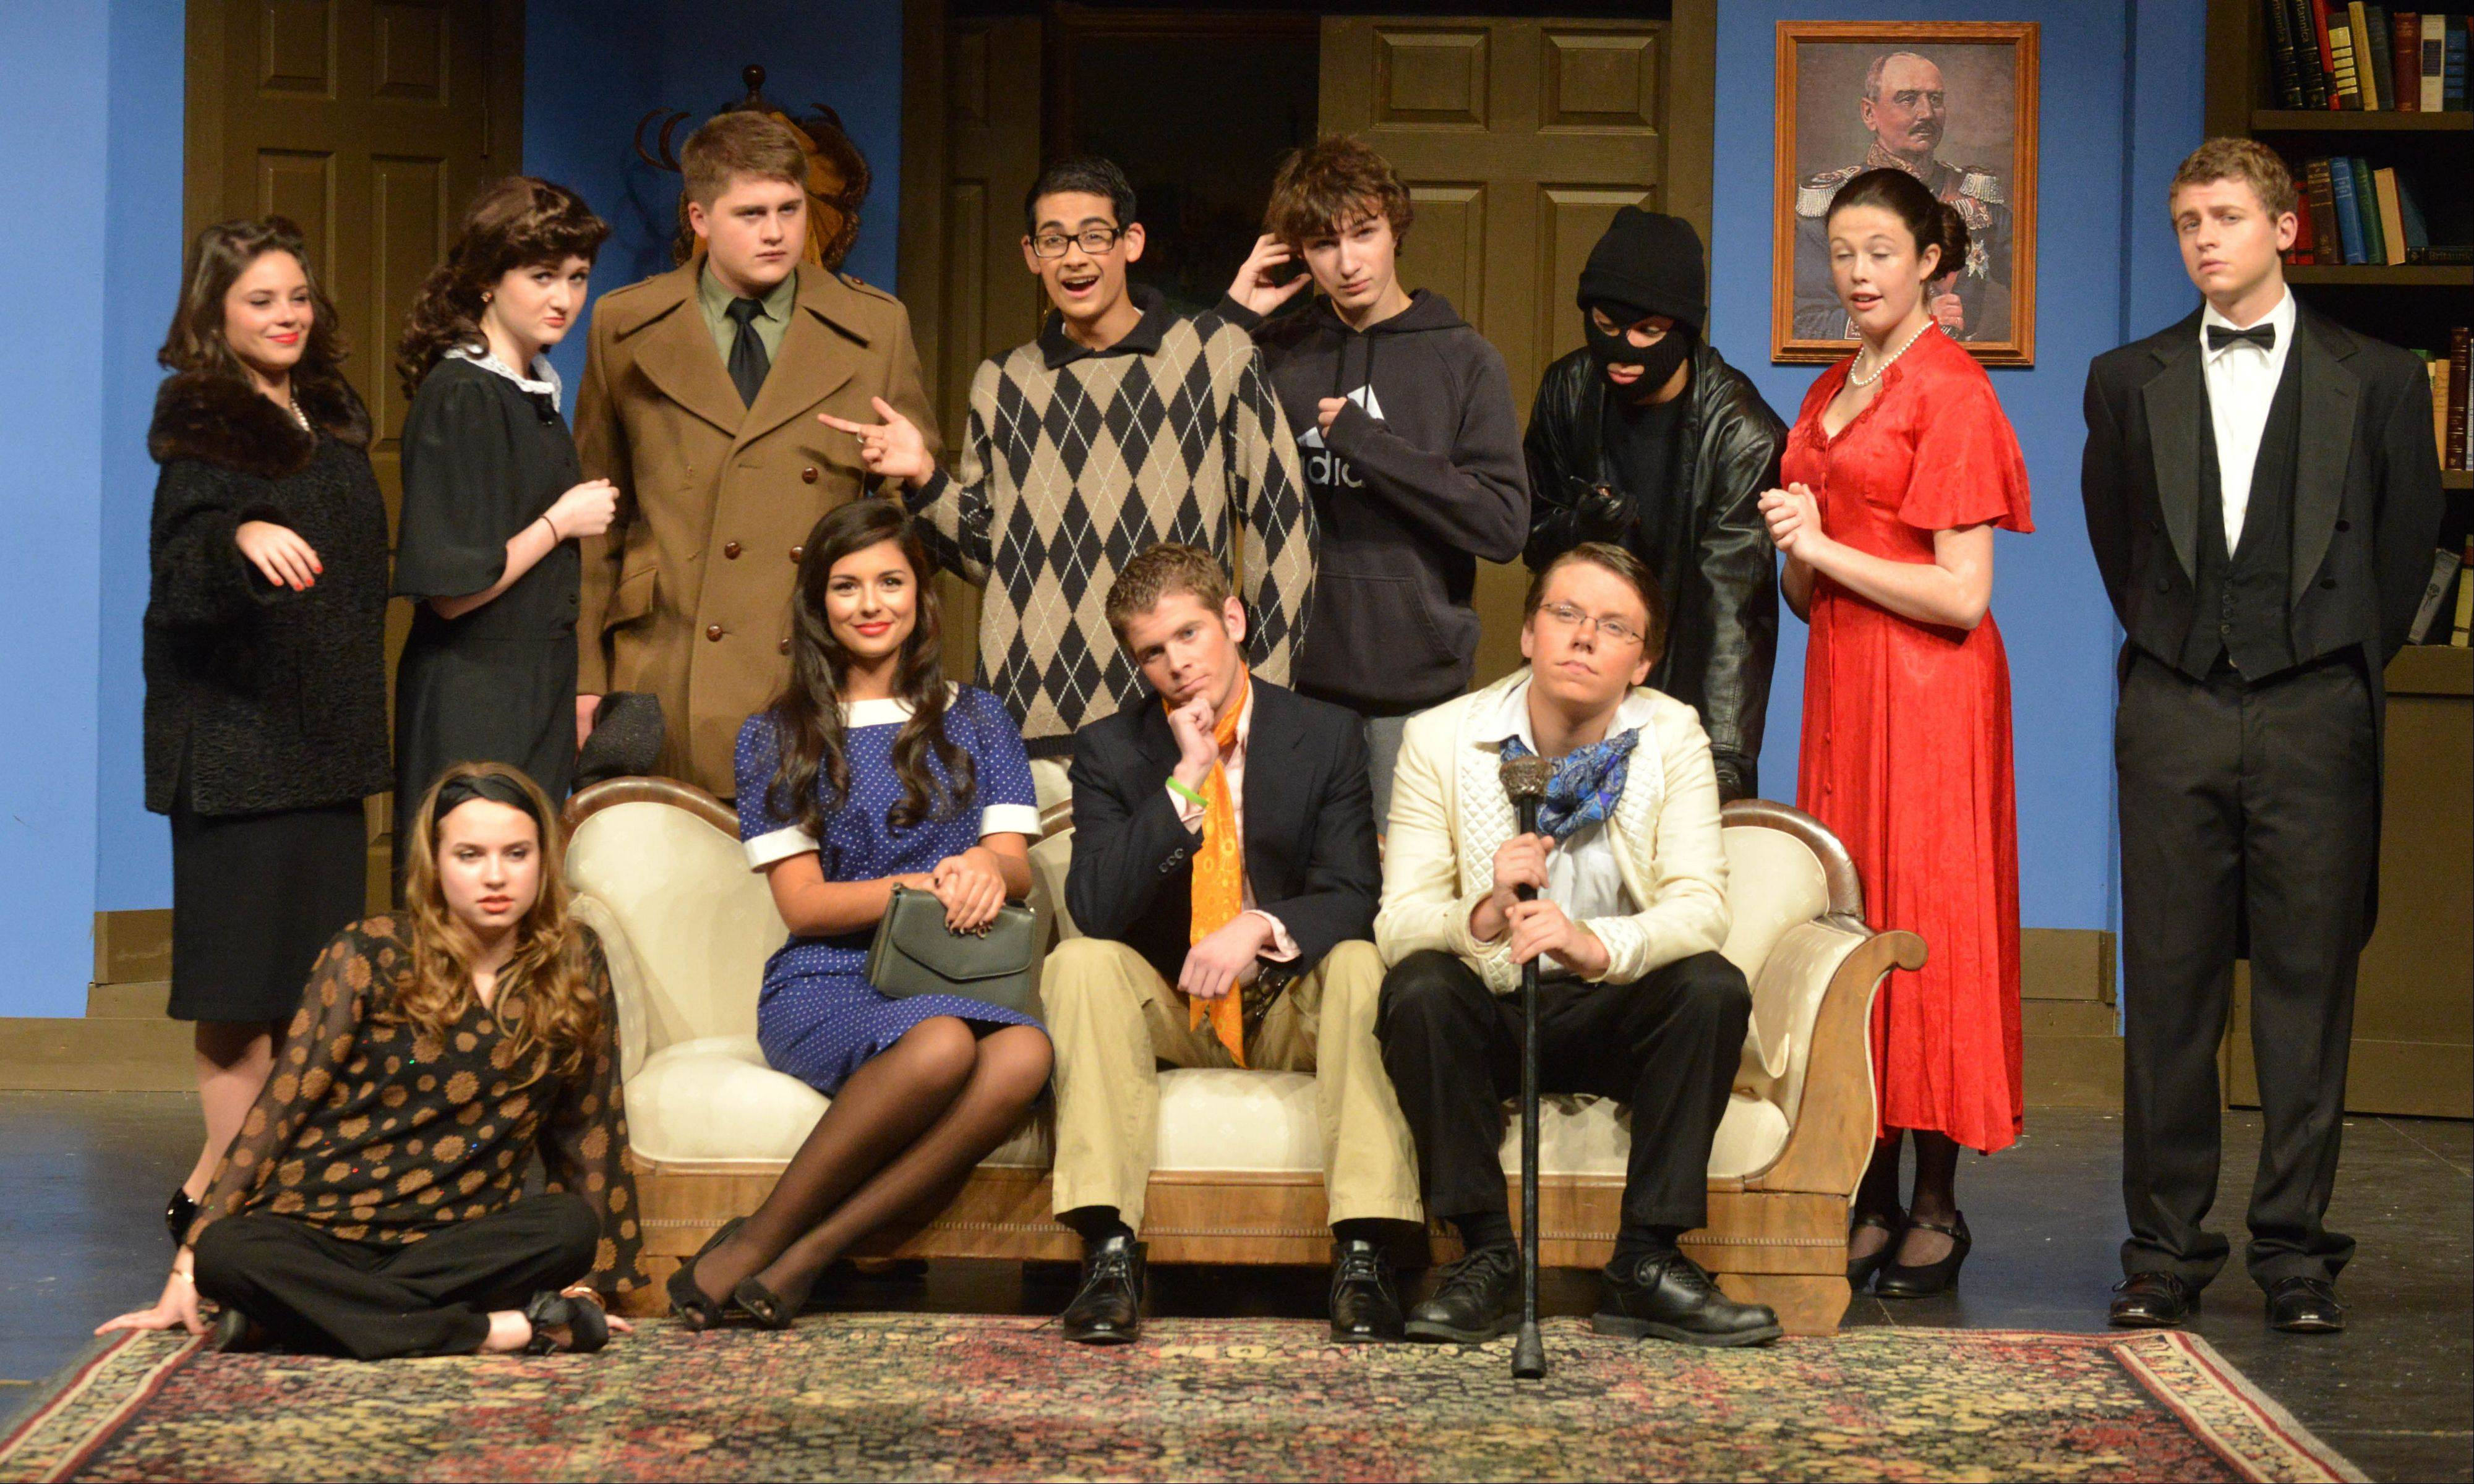 �The Musical Comedy Murders of 1940� continues Friday and Saturday in the Naperville Central High School auditorium.